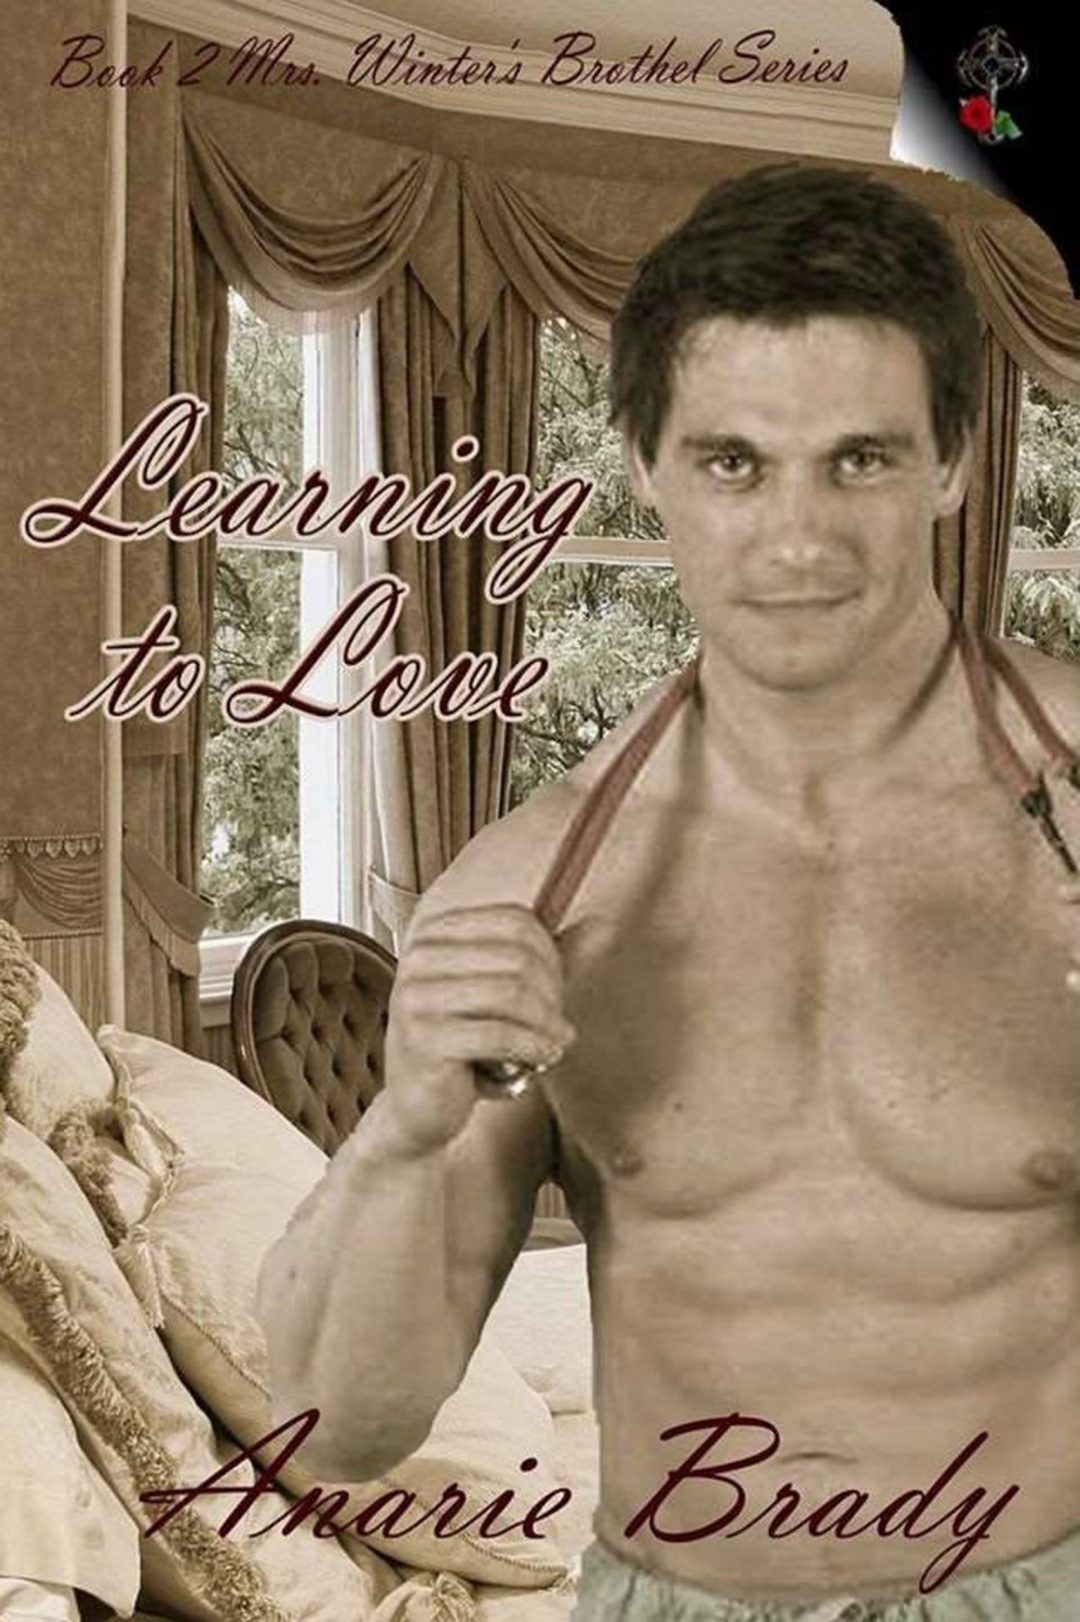 Learning to Love by Anarie Brady